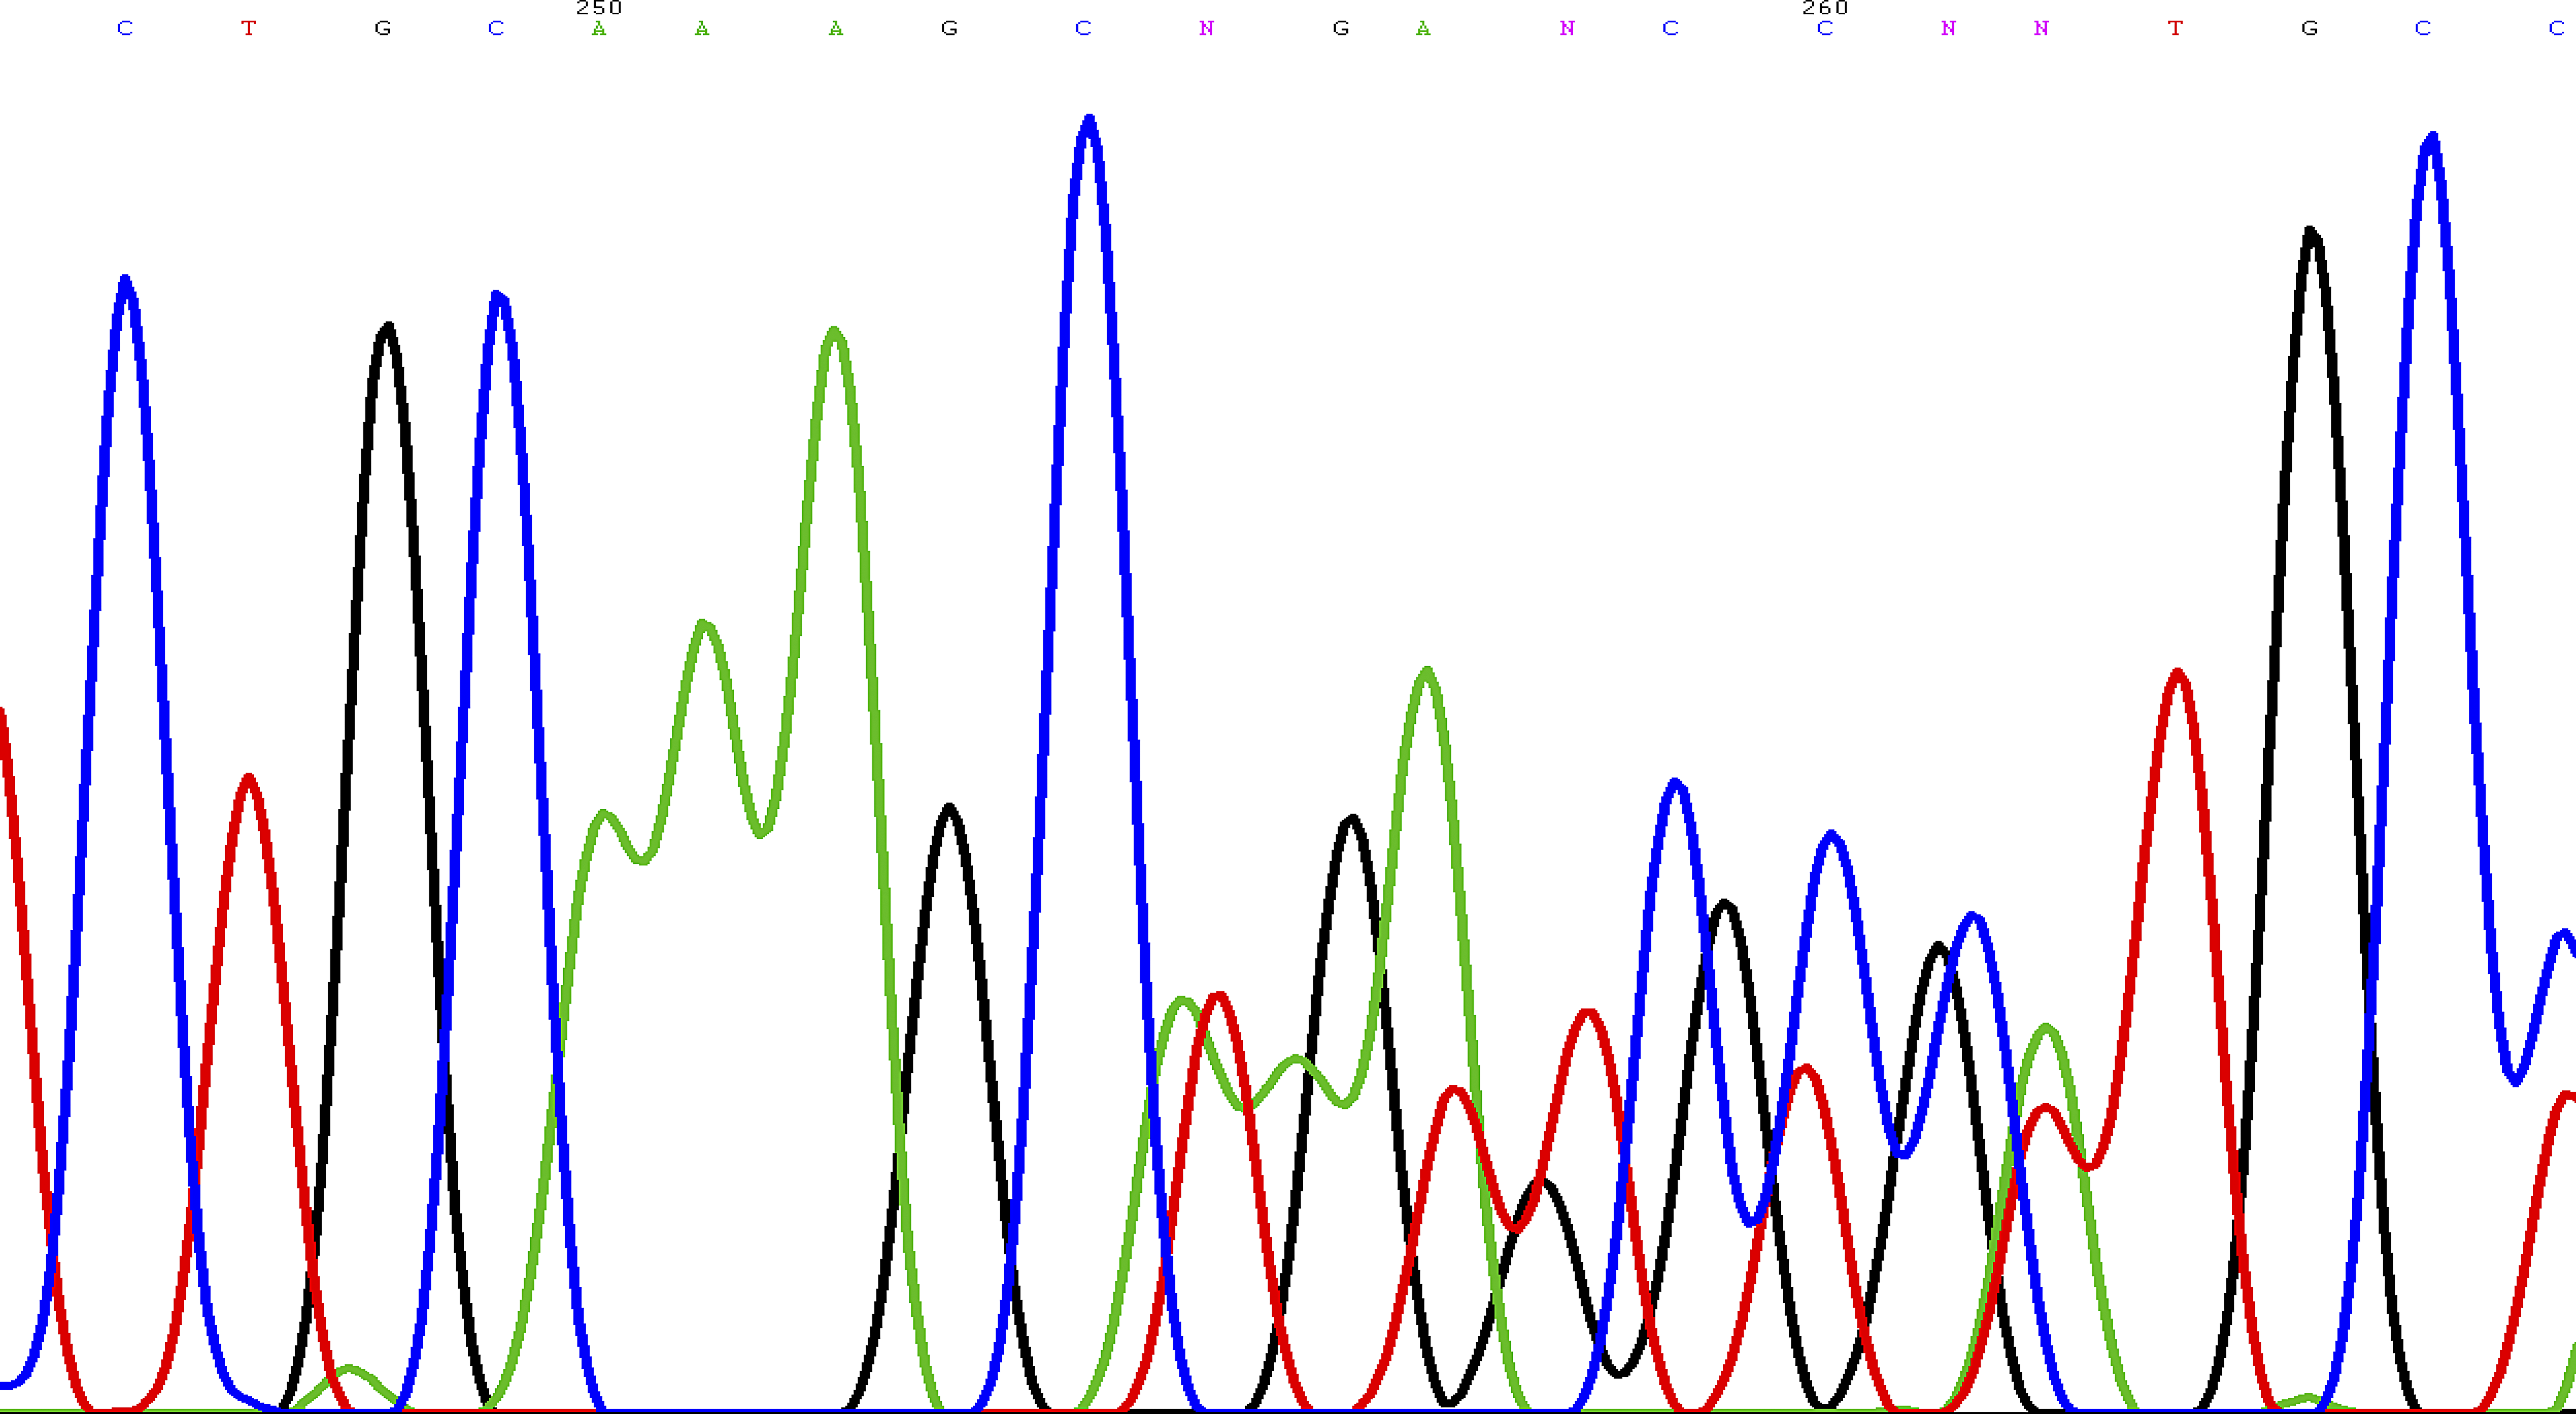 Sequence Chromatogram Showing the Novel Frameshift Mutation of the <i>SDHD</i> Gene: c.449_453dup (p.Val153LysfsX17)